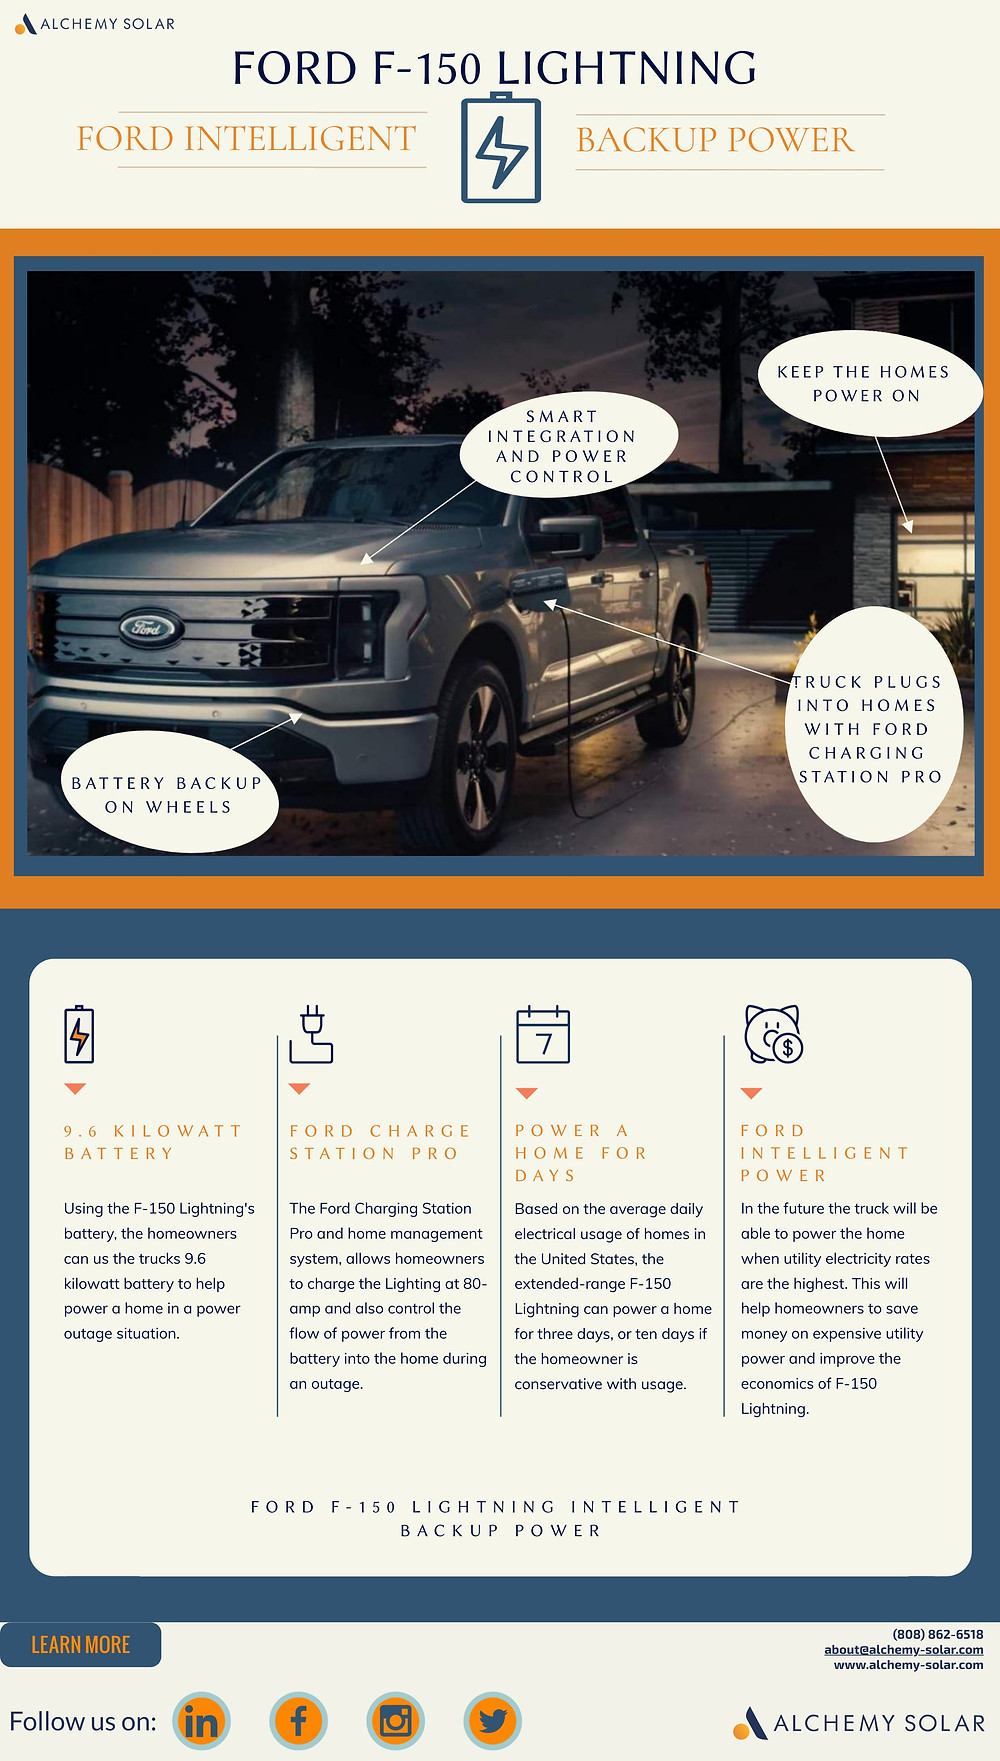 How the Ford F-150 Lightning Intelligent Backup Power is used to power a home in the case of a blackout for battery backup